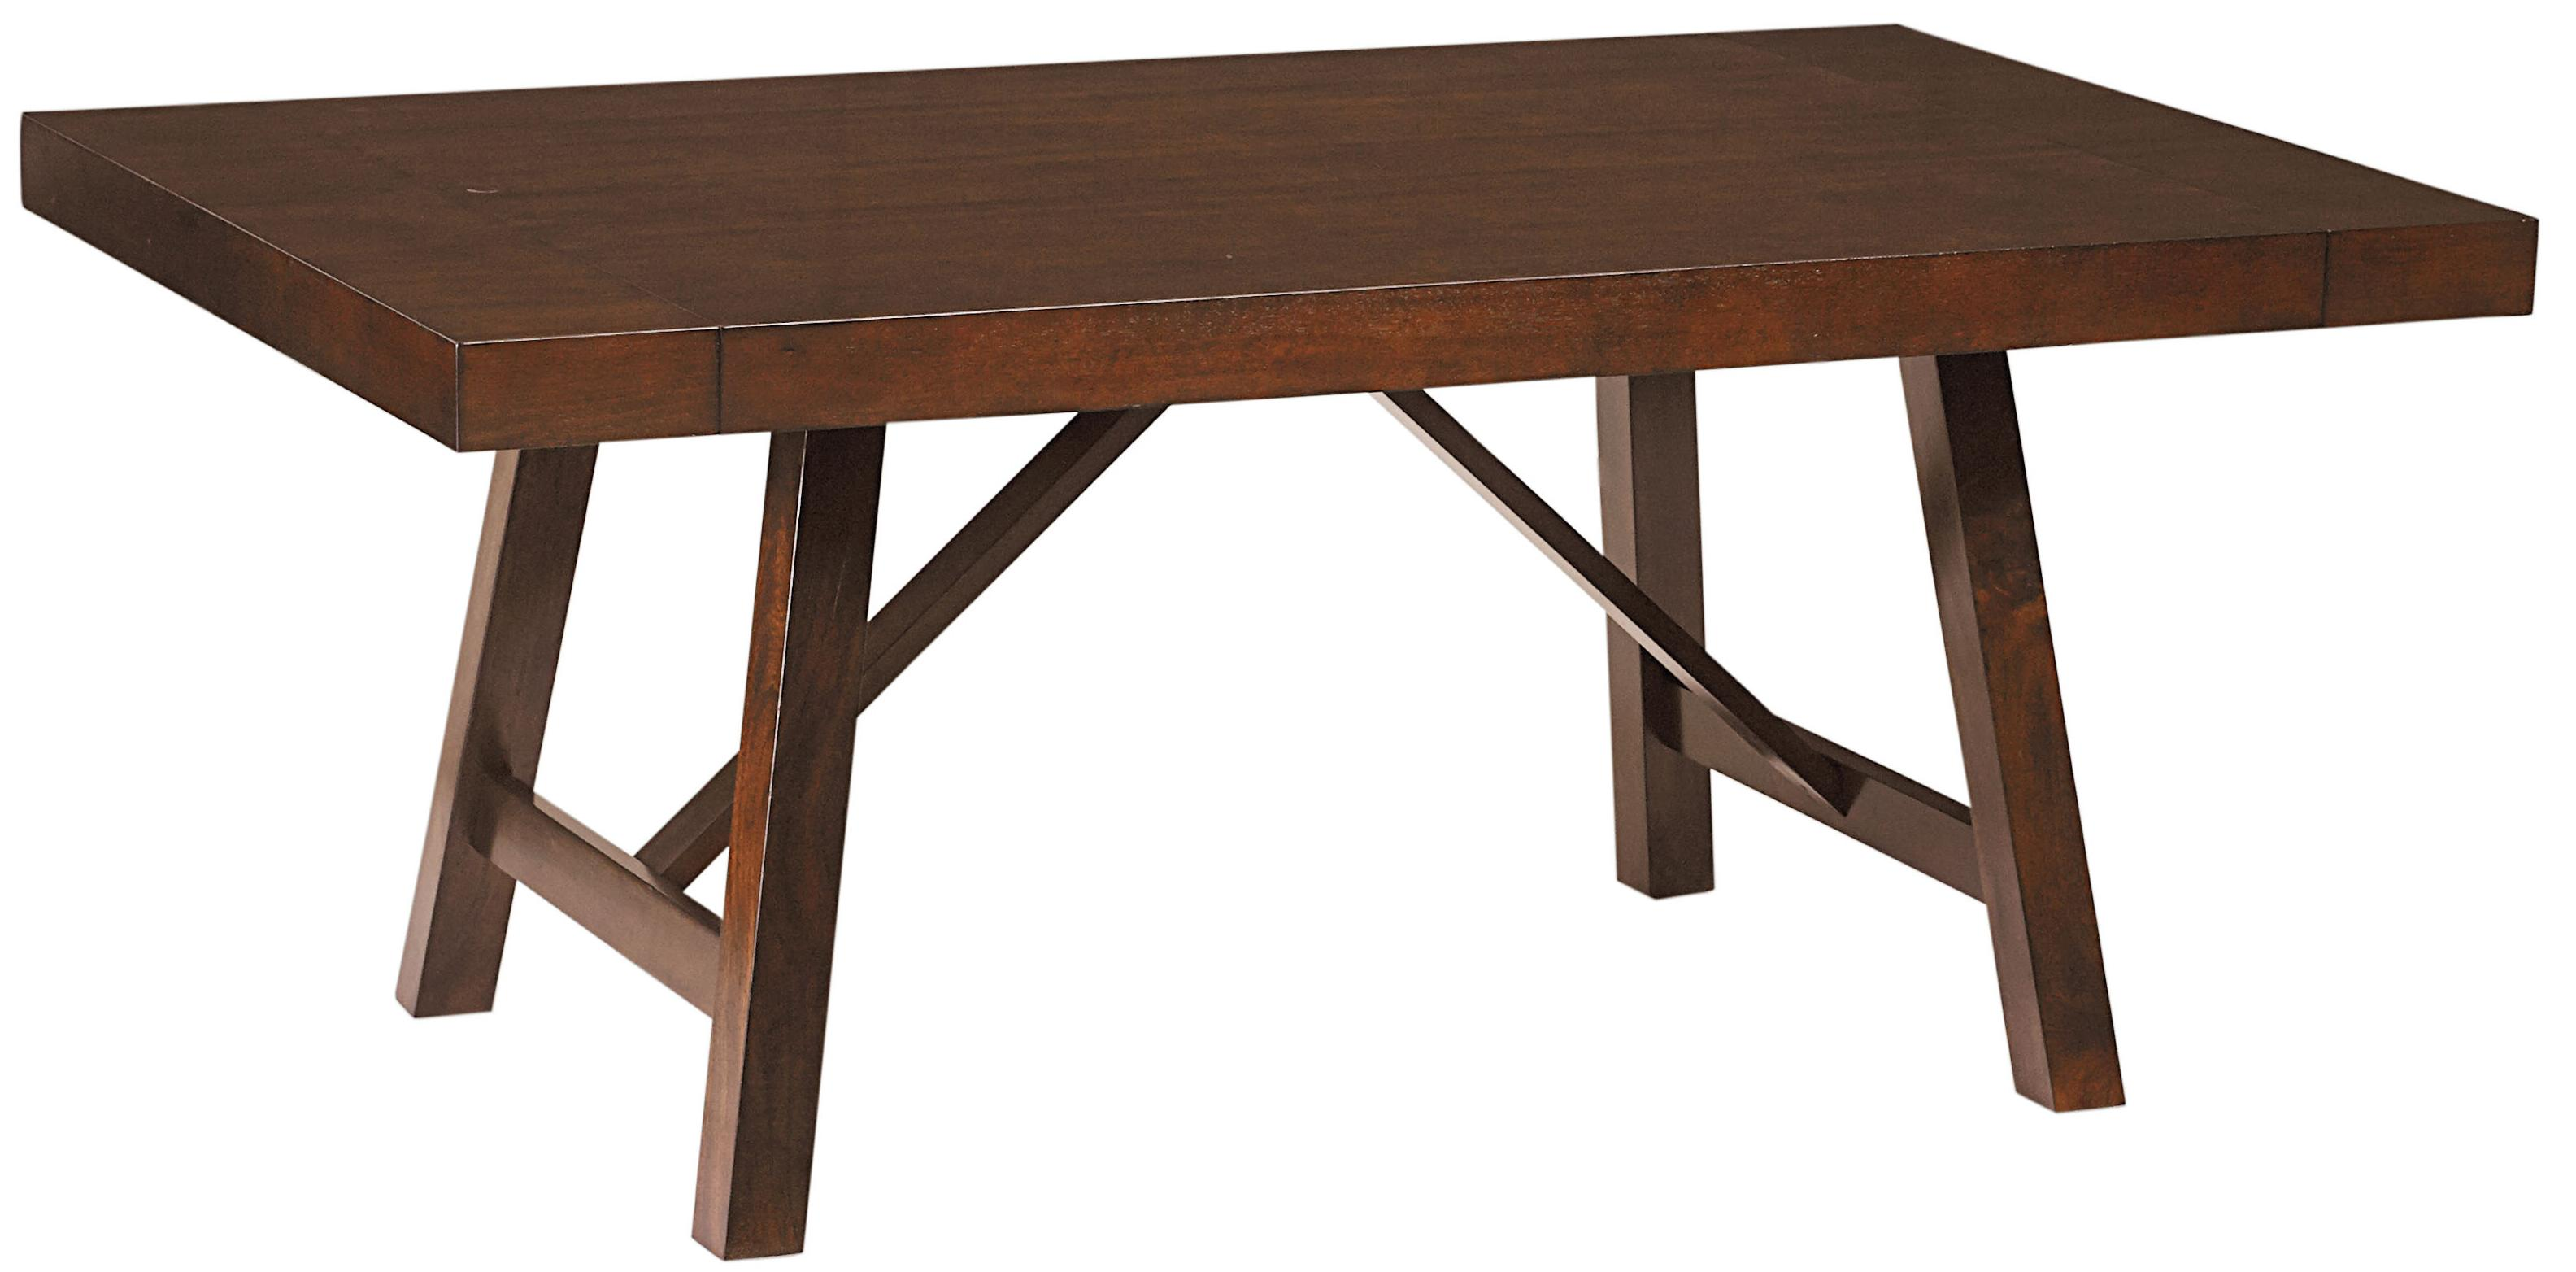 Trestle dining room table with two leaves by standard for Dining table with two leaves